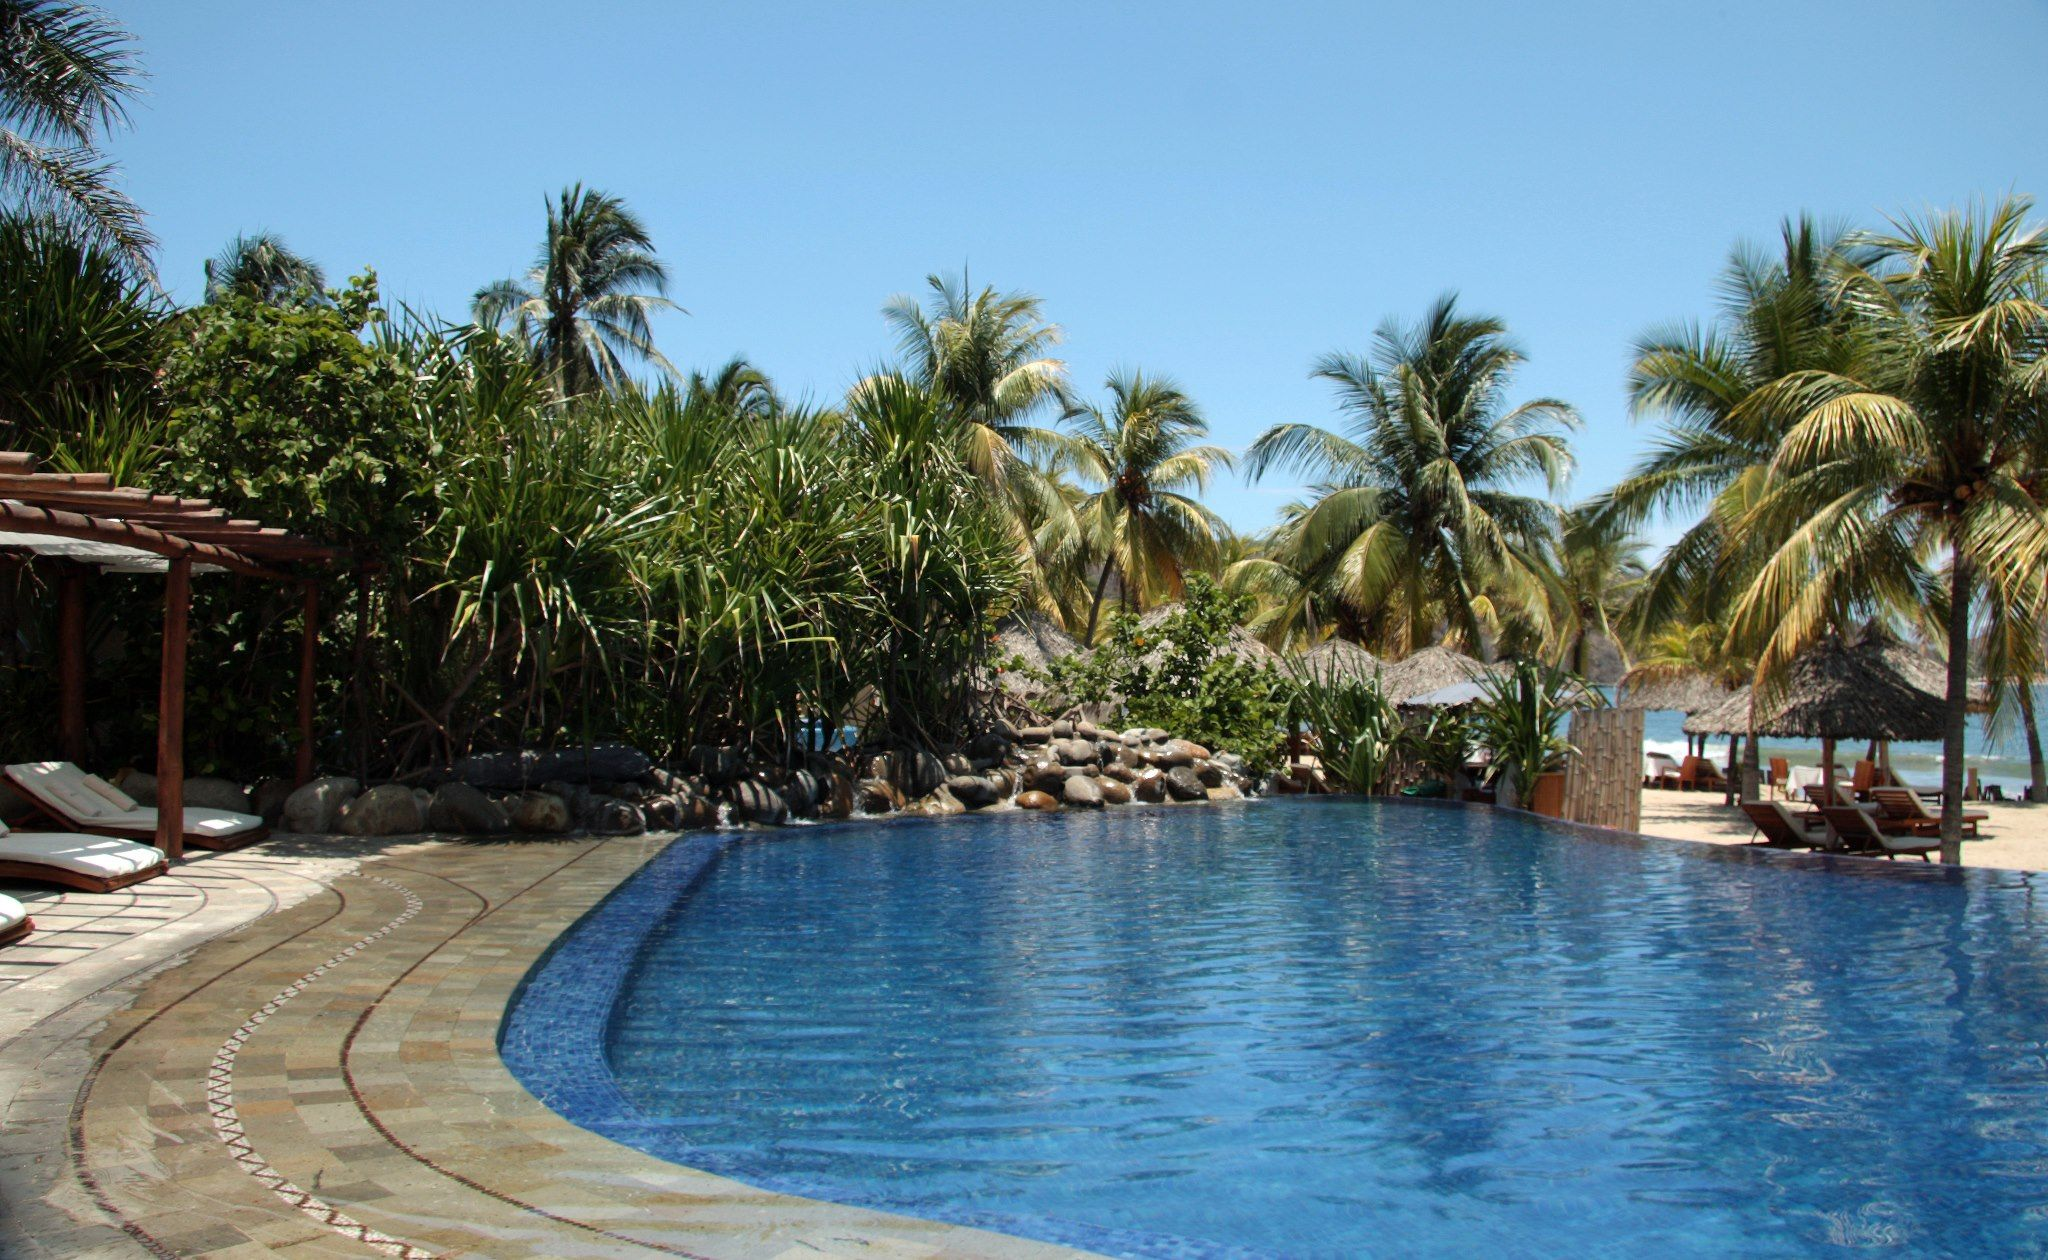 A beautiful September day in Zihuatanejo #Mexico